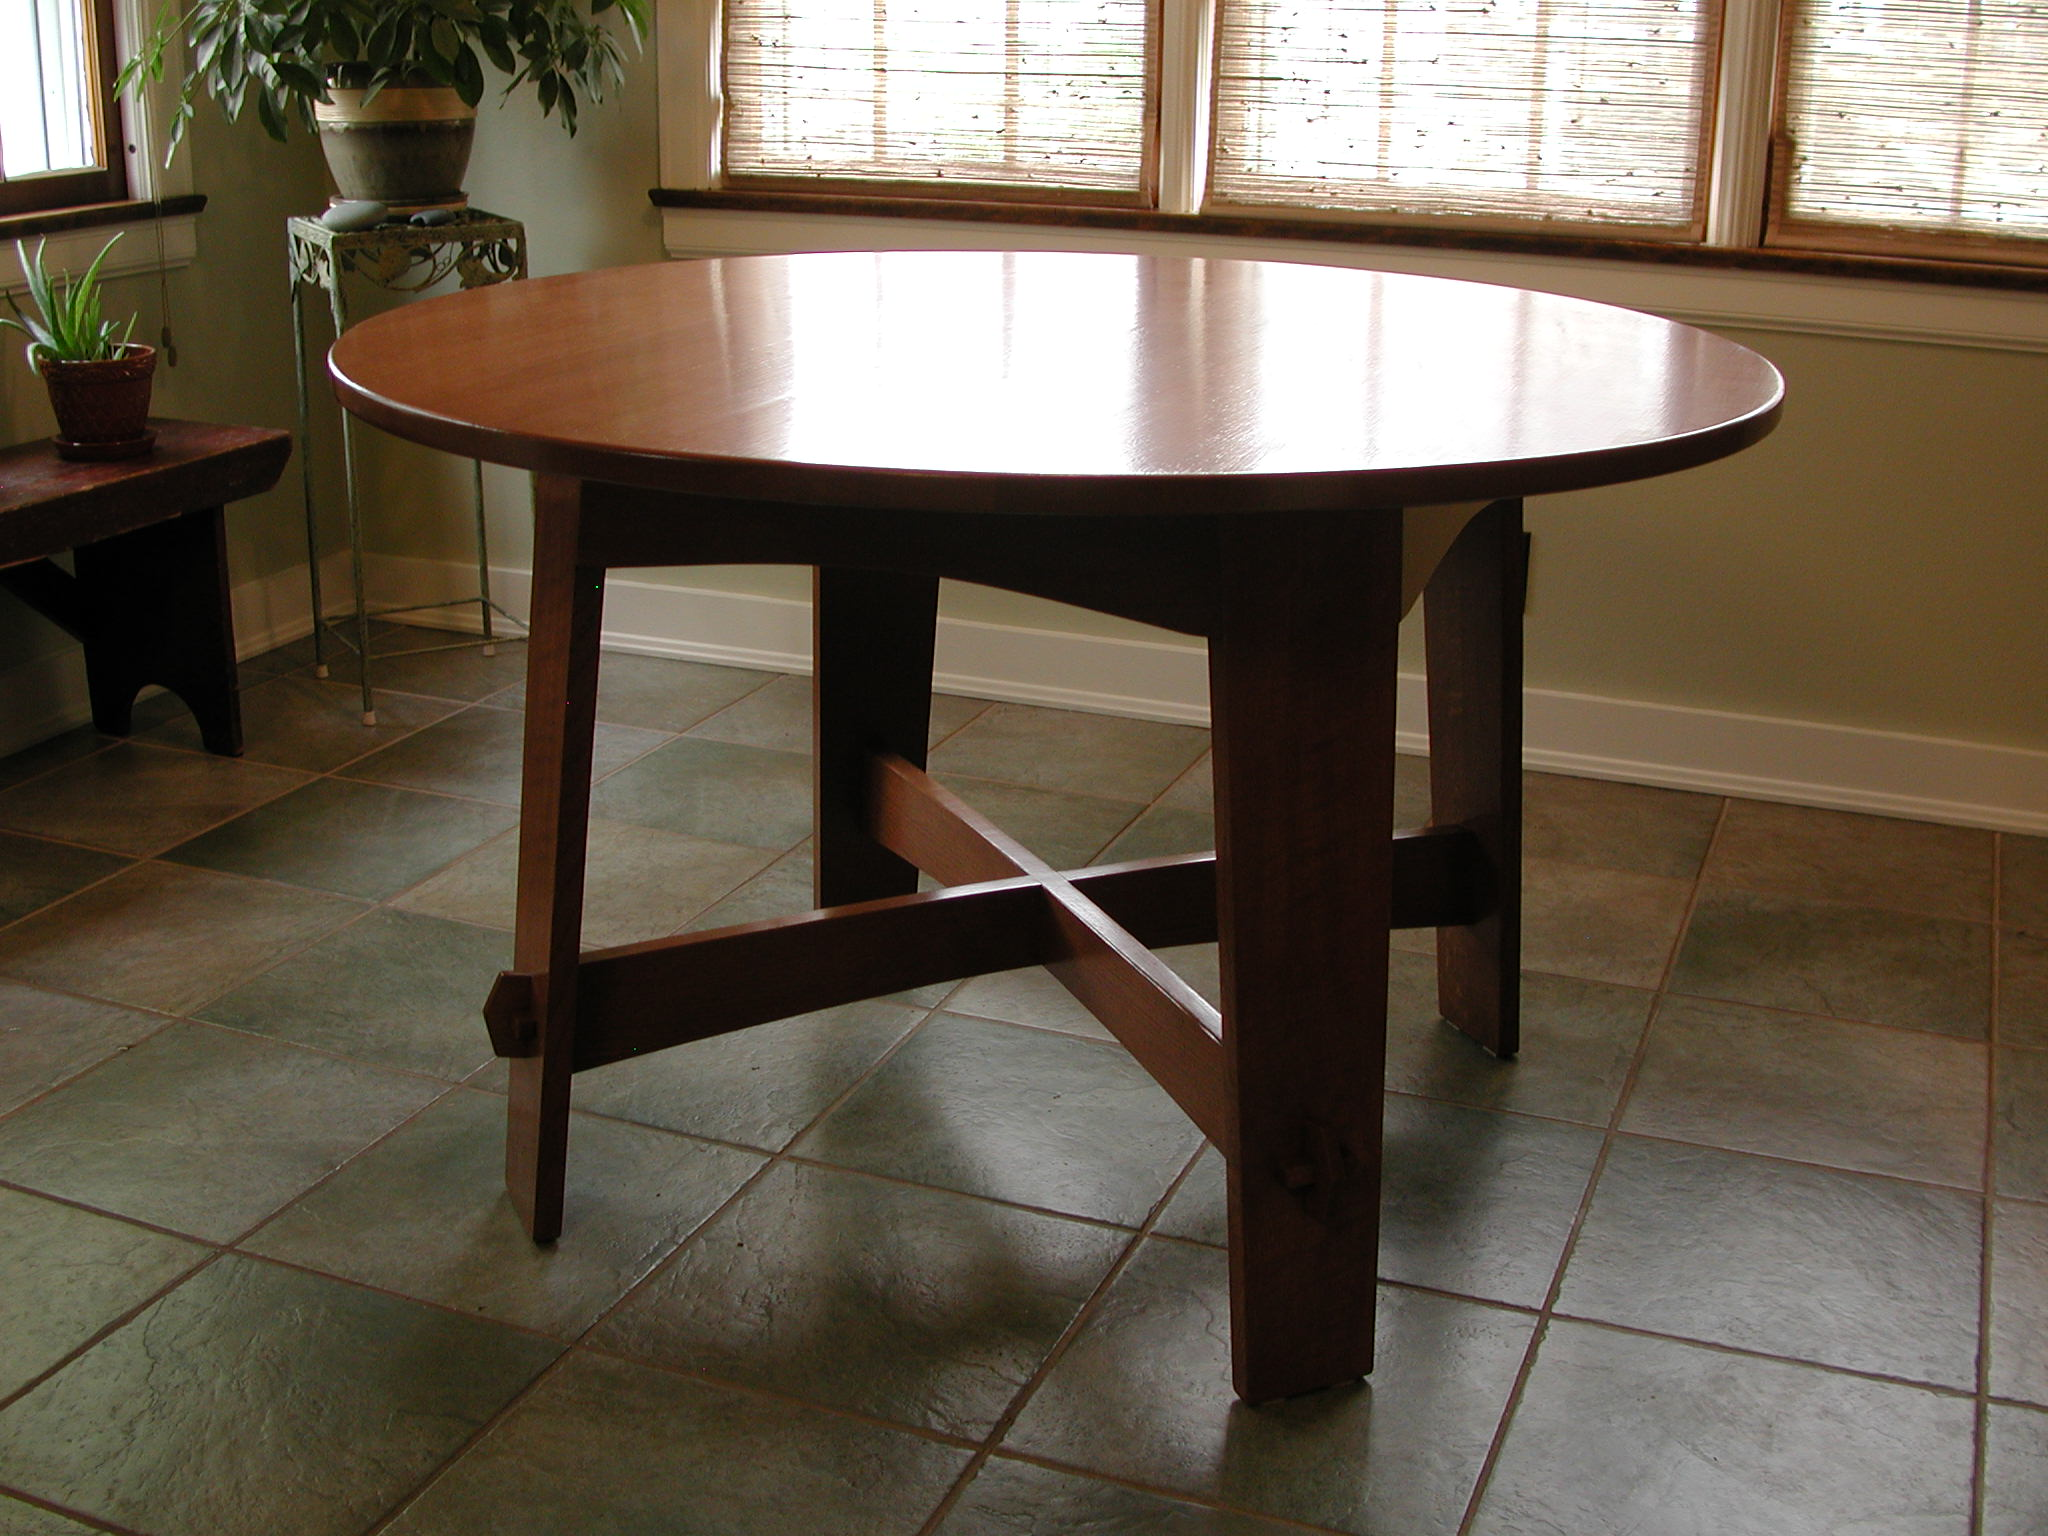 Limbert-inspired Arts & Crafts Table